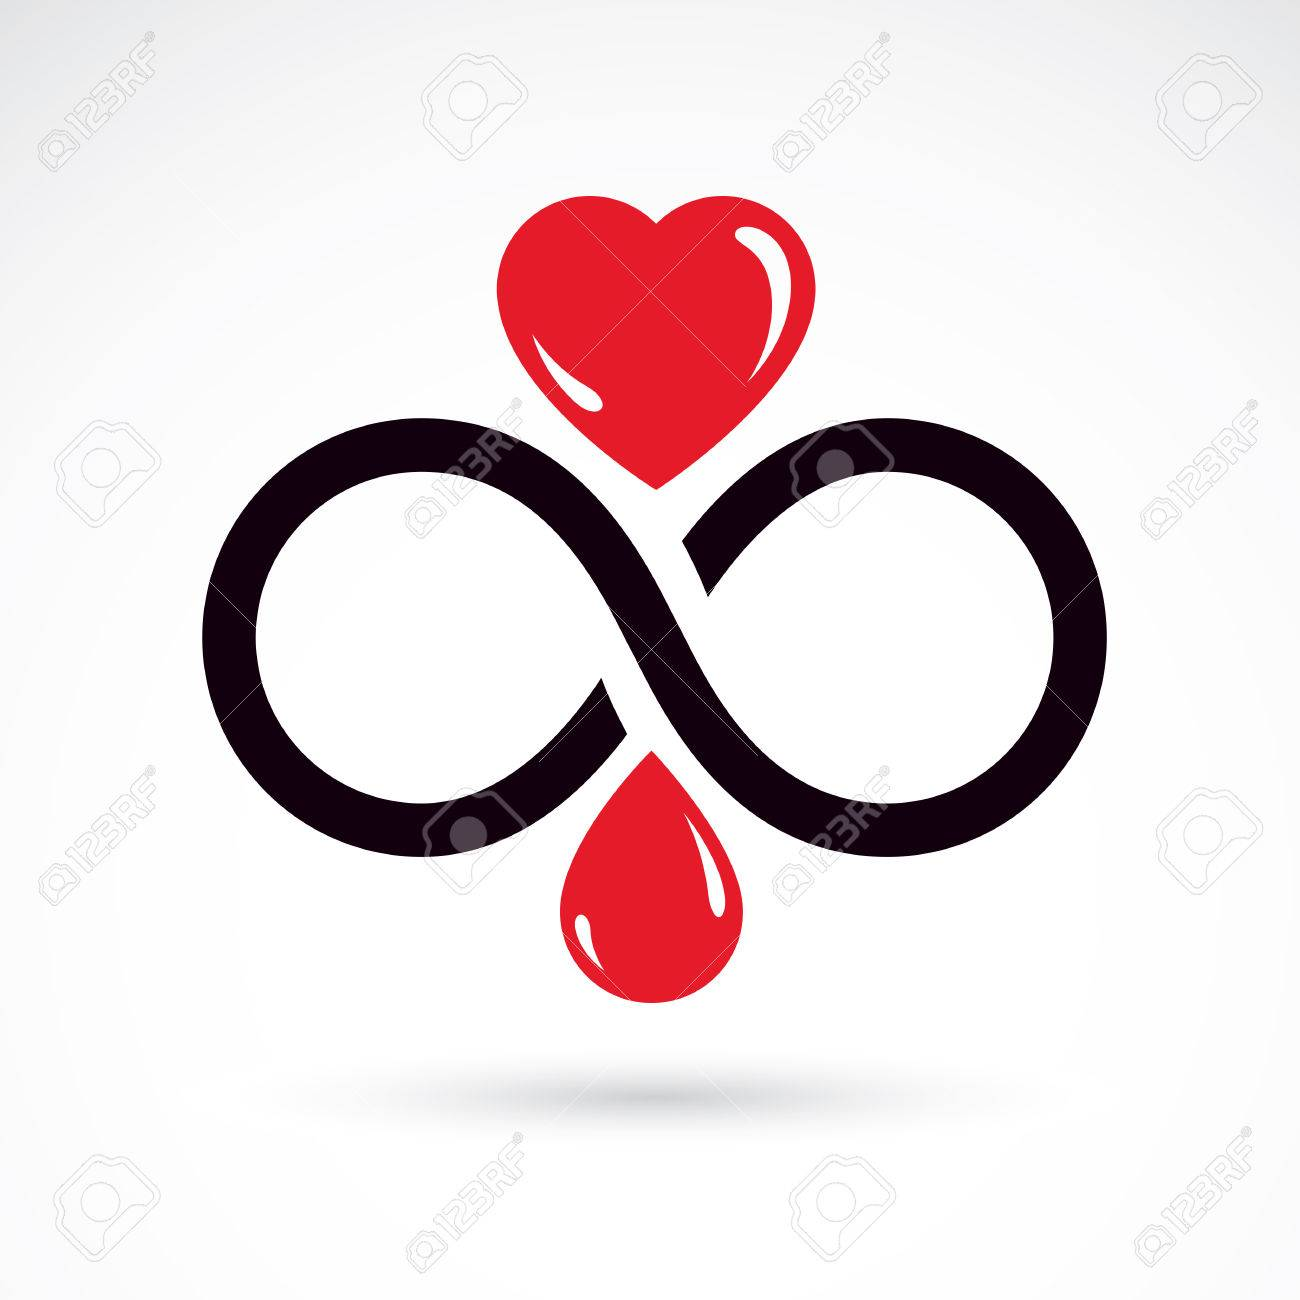 Vector illustration of heart shape and infinity symbol hematology vector illustration of heart shape and infinity symbol hematology theme medical treatment design buycottarizona Gallery